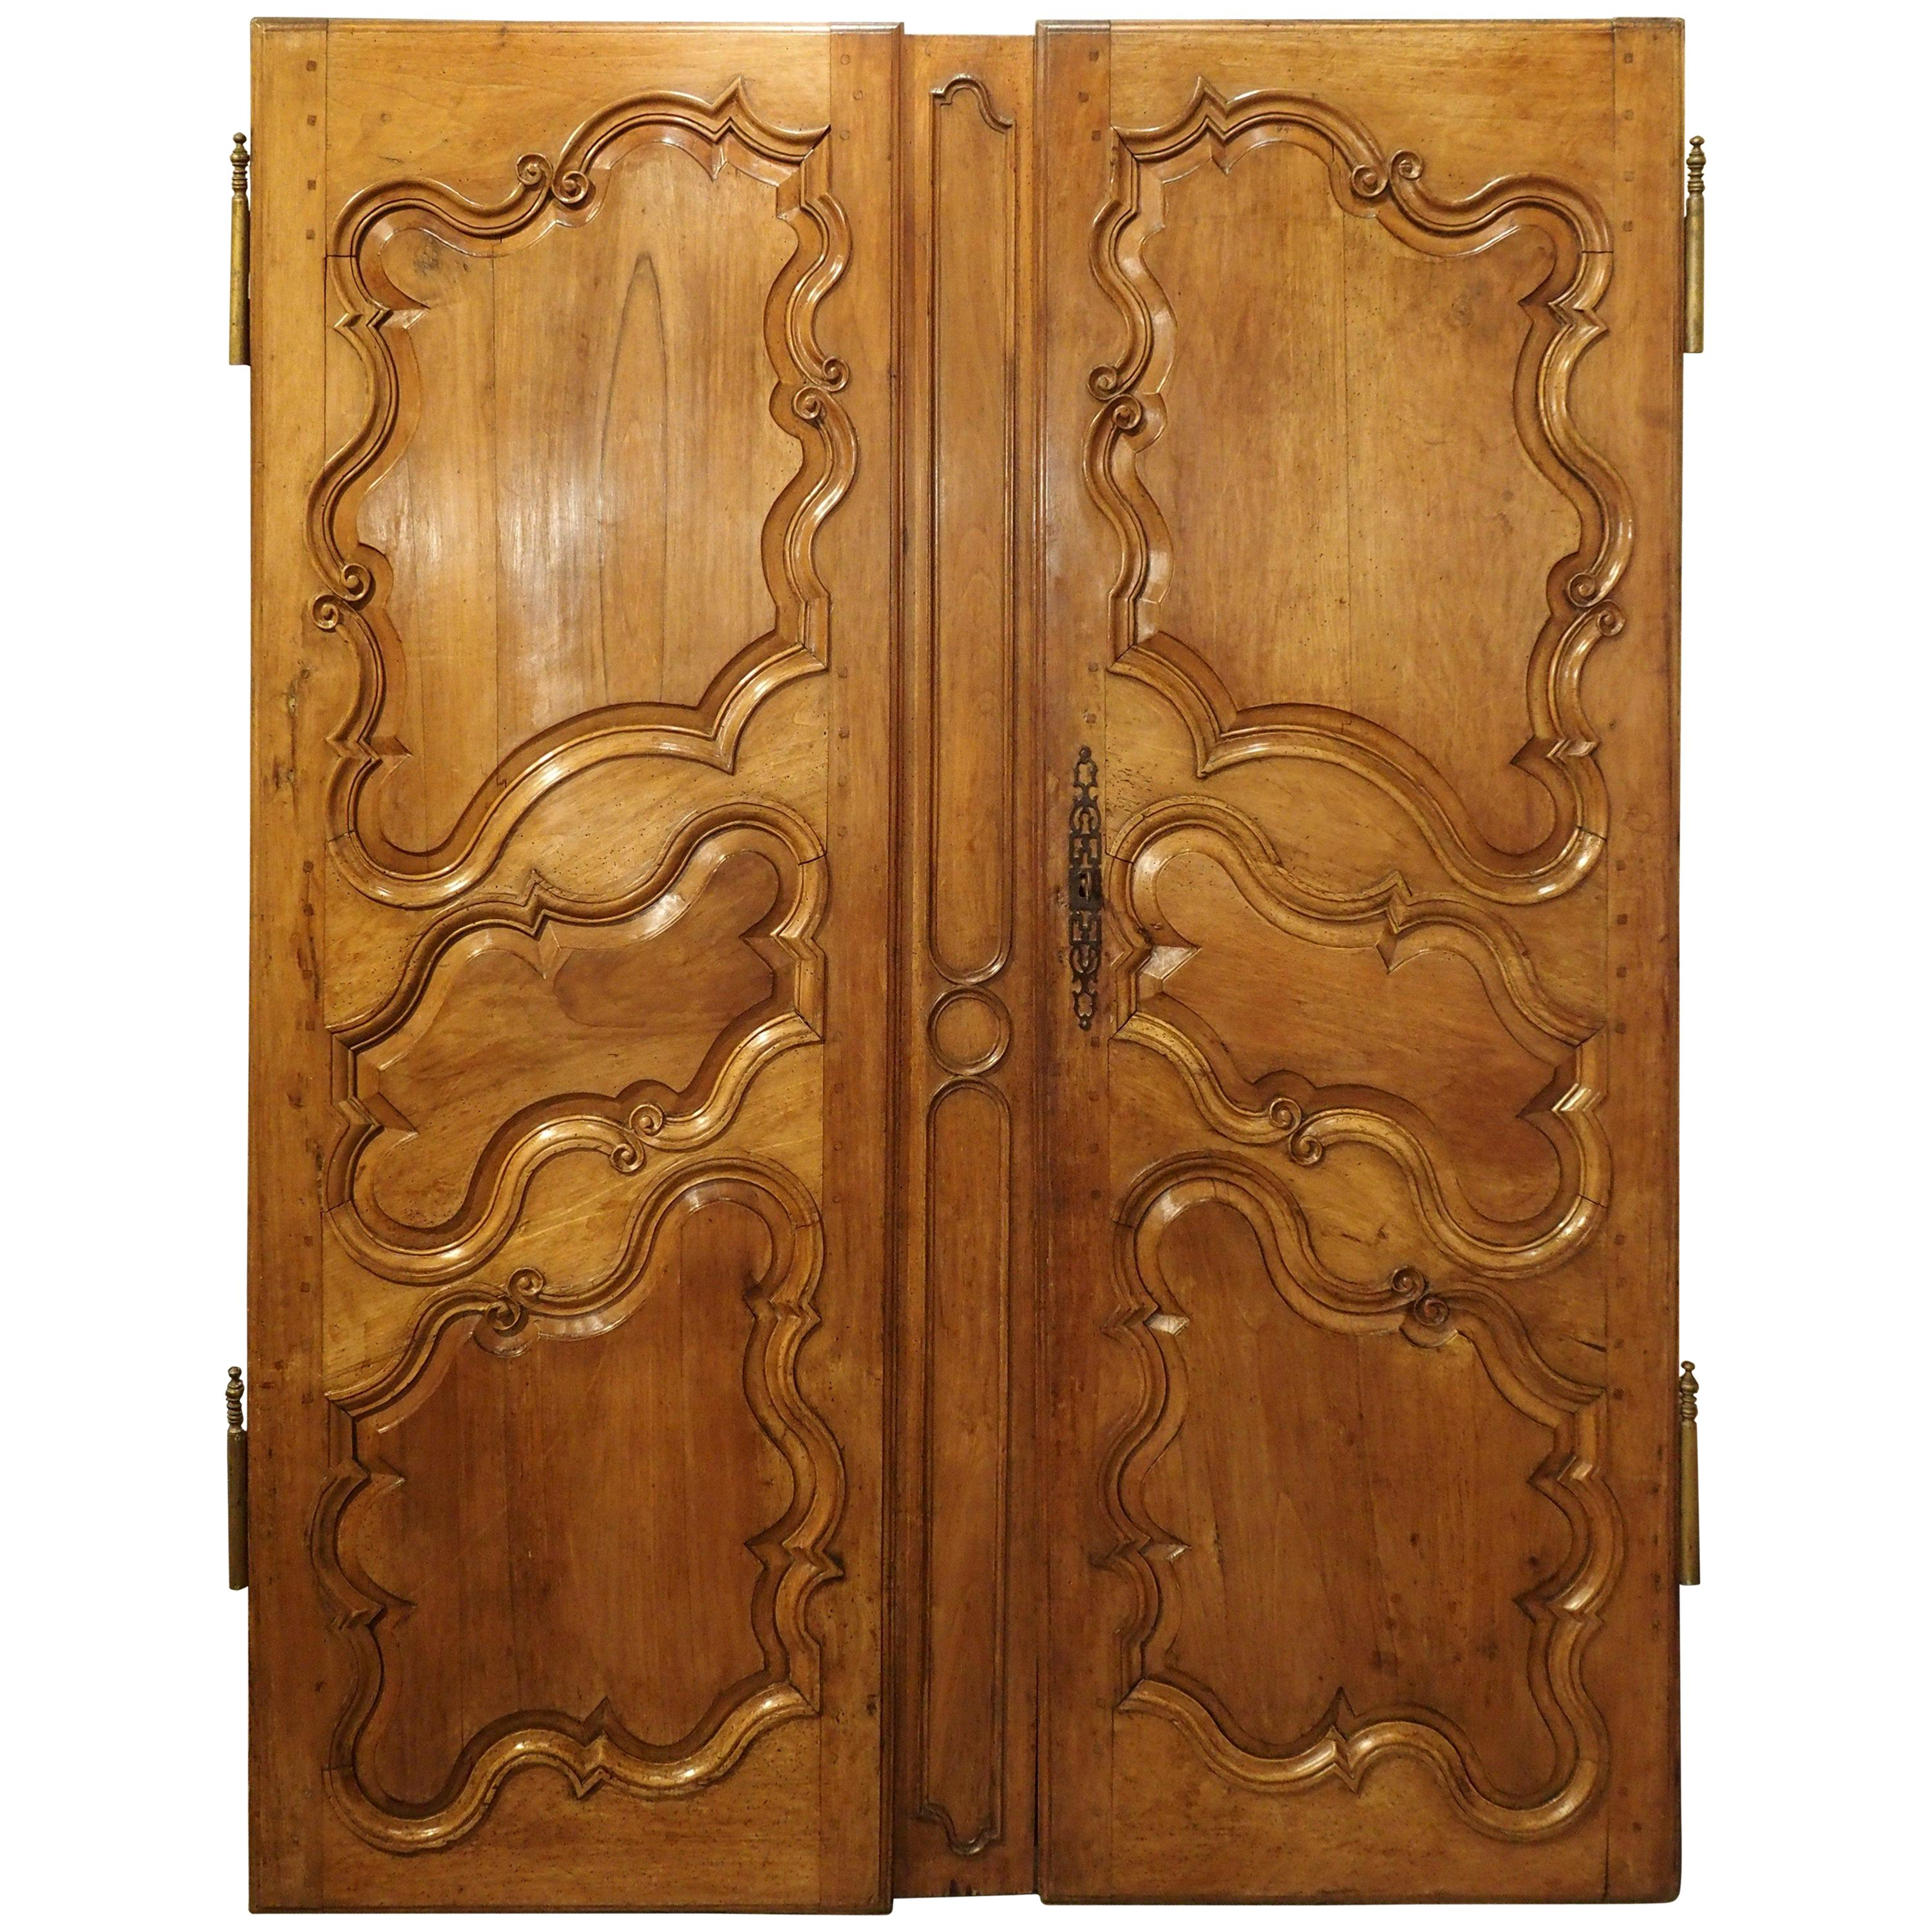 Pair of 18th Century Armoire Doors from Arles, France